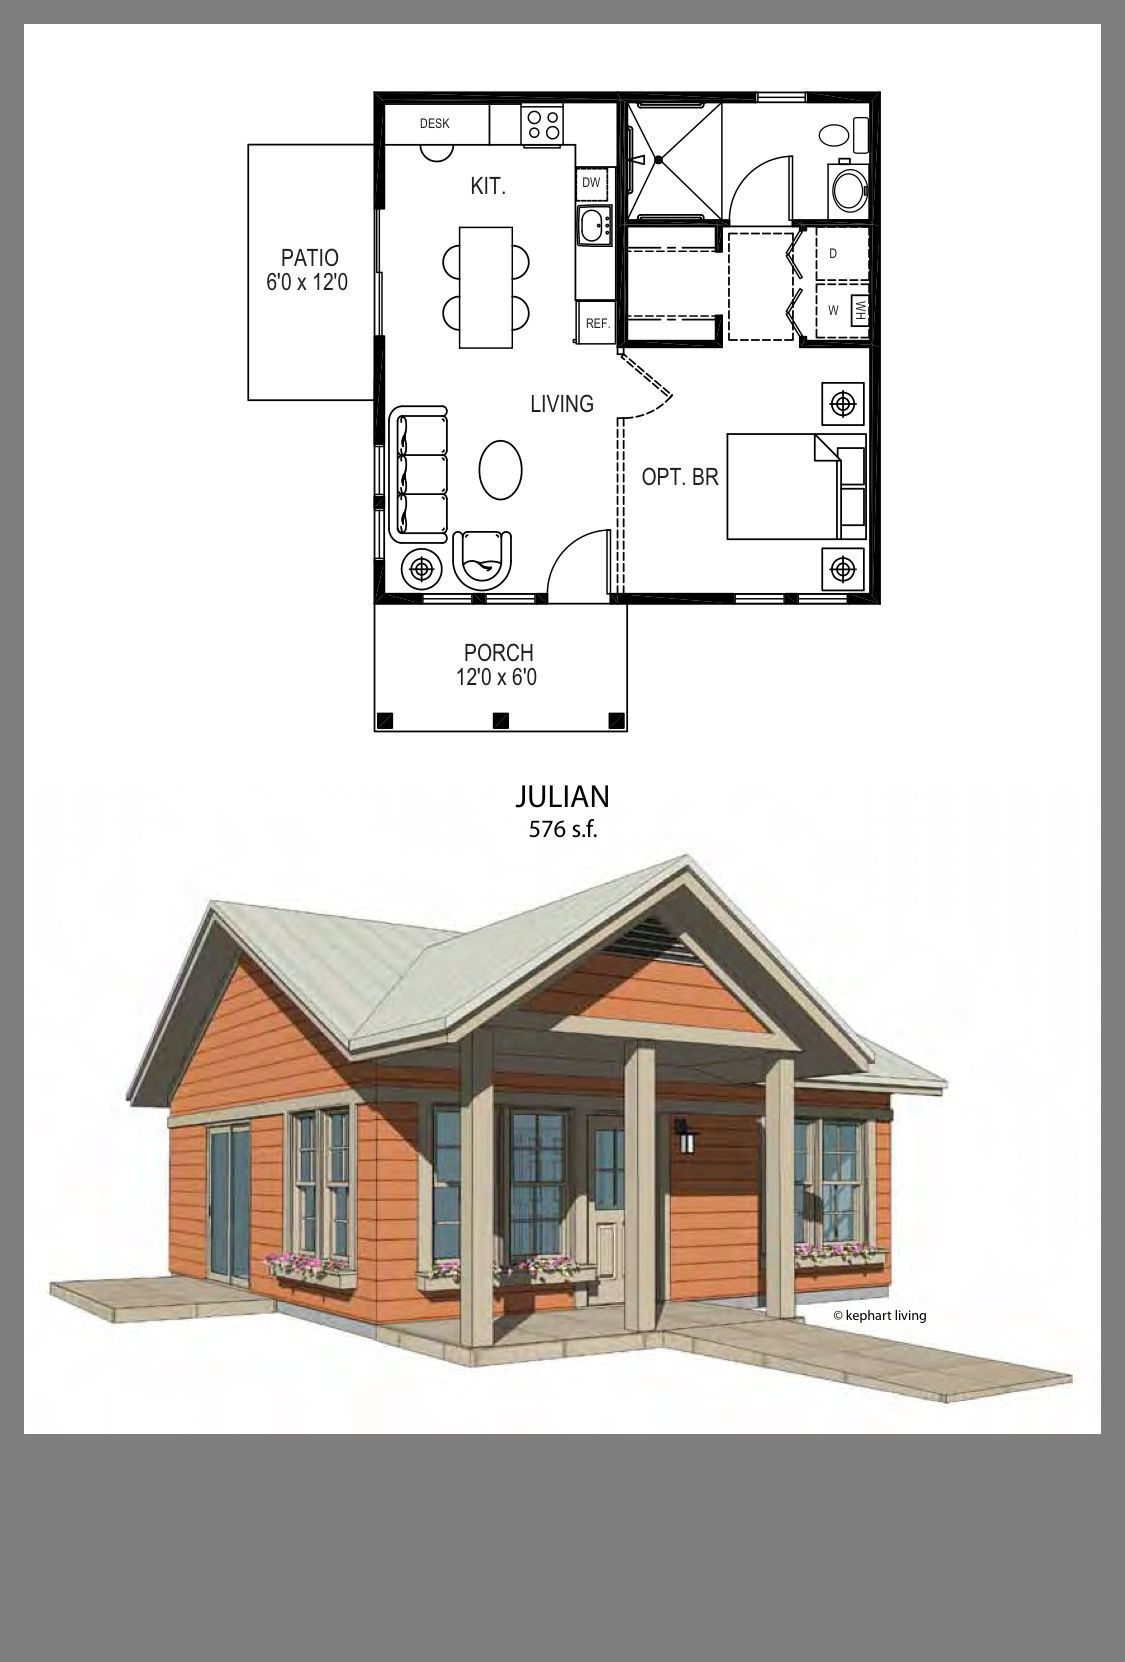 Small Floor Plans for Houses Lovely Julian Small but Efficient